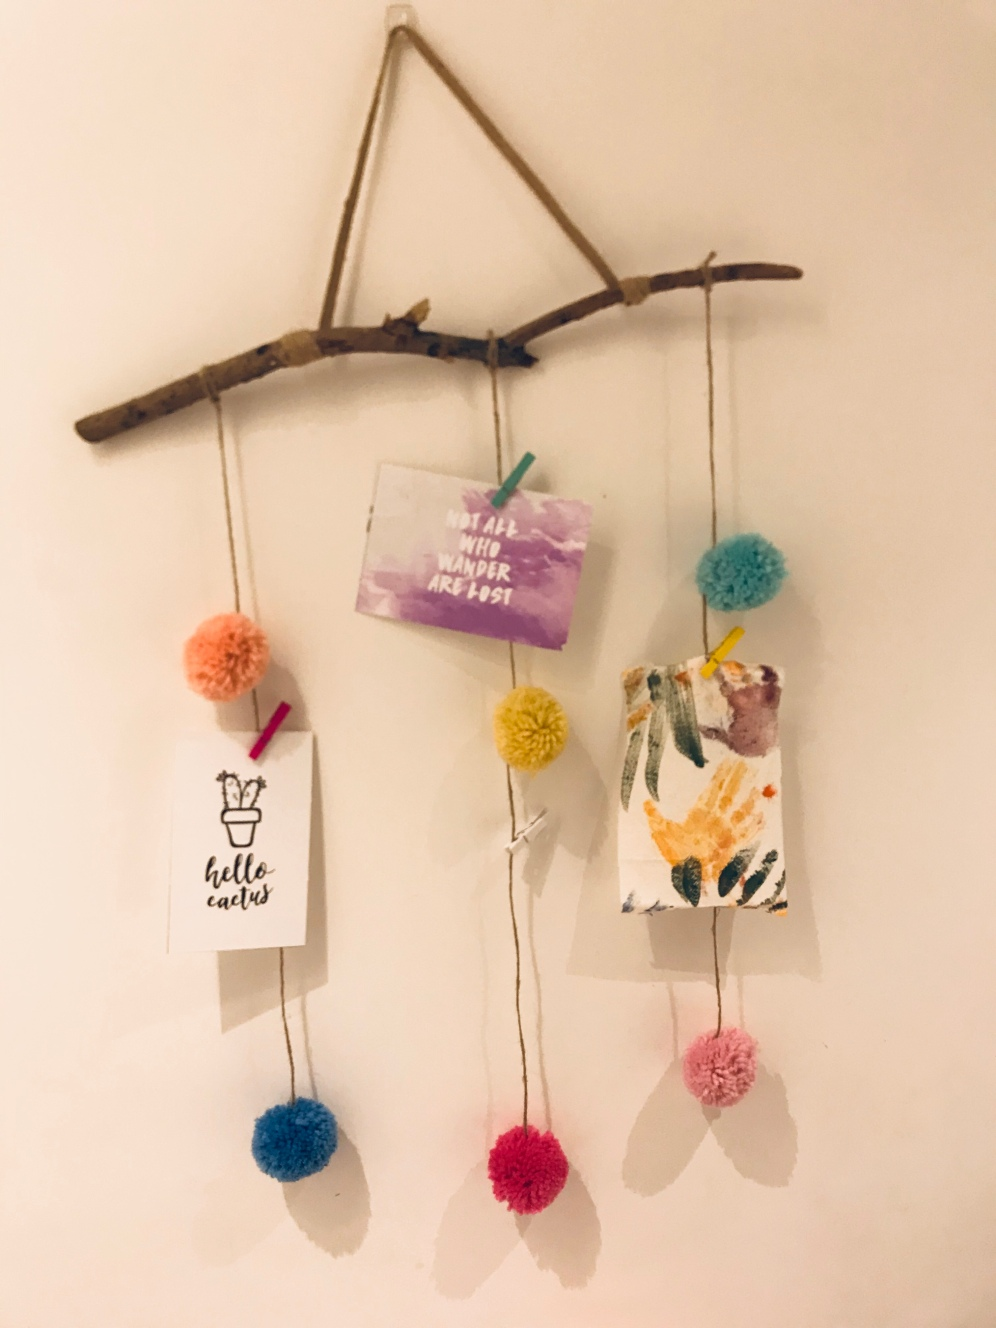 5. Add your coloured pegs and hang on the wall and add your pictures, crafts and inspirations!